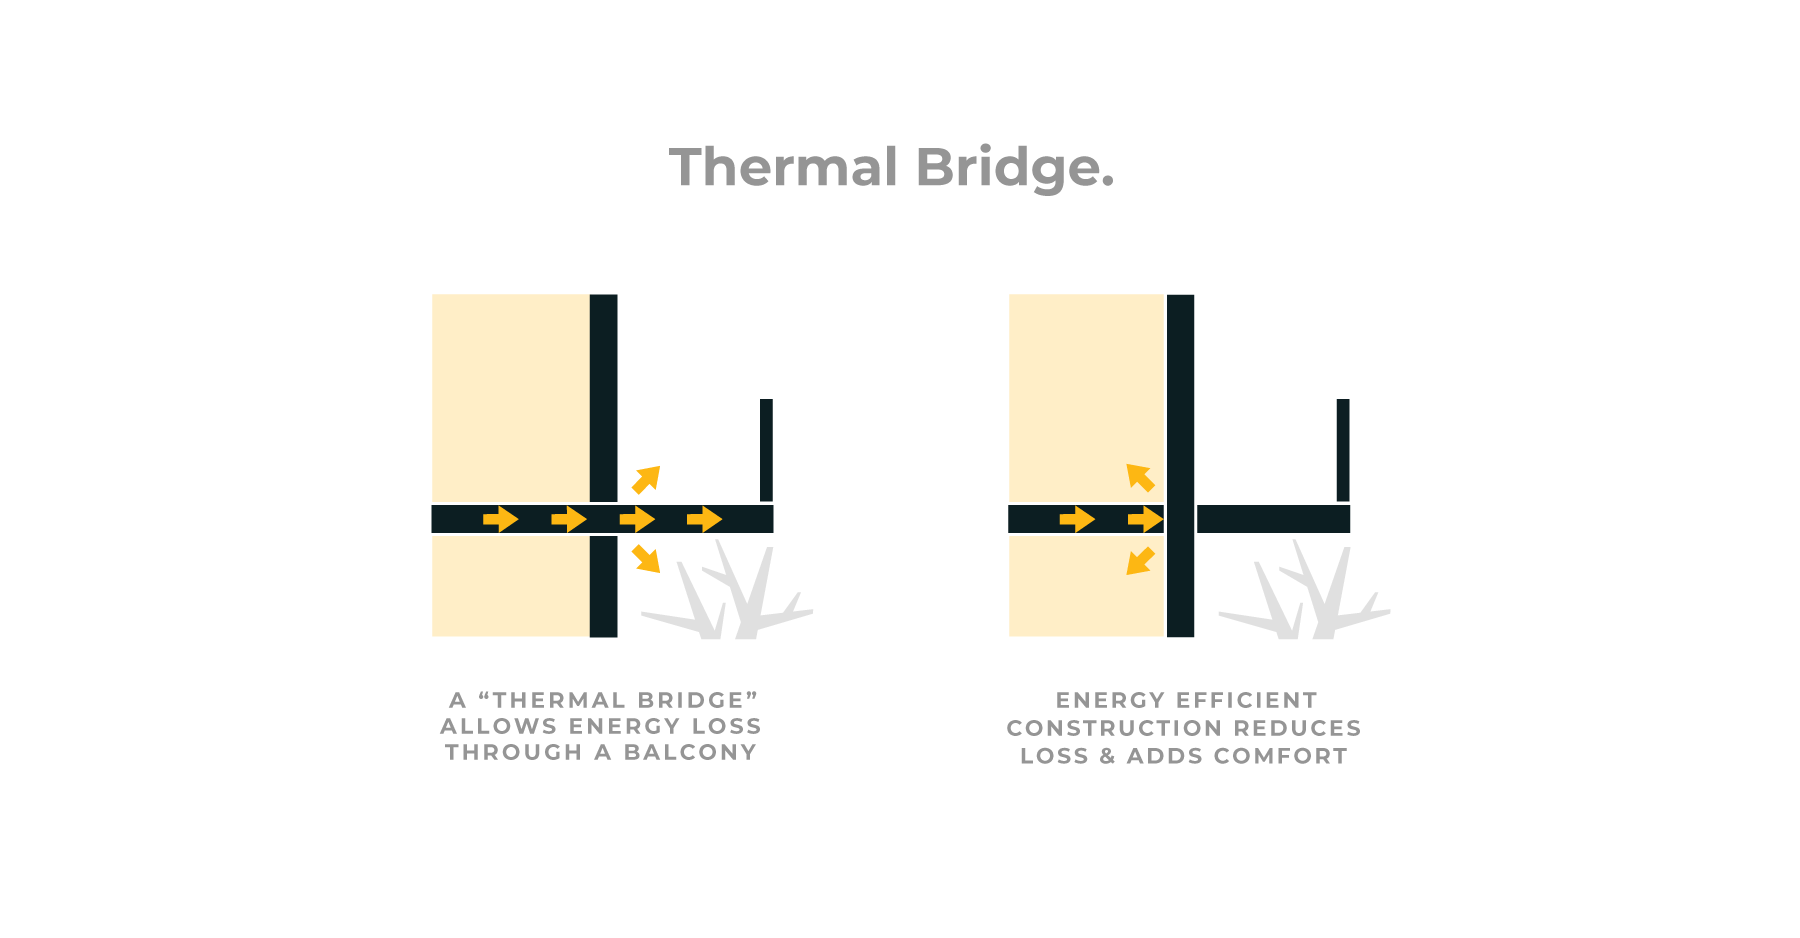 The value and cost of avoiding thermal bridging in modern sustainable home construction